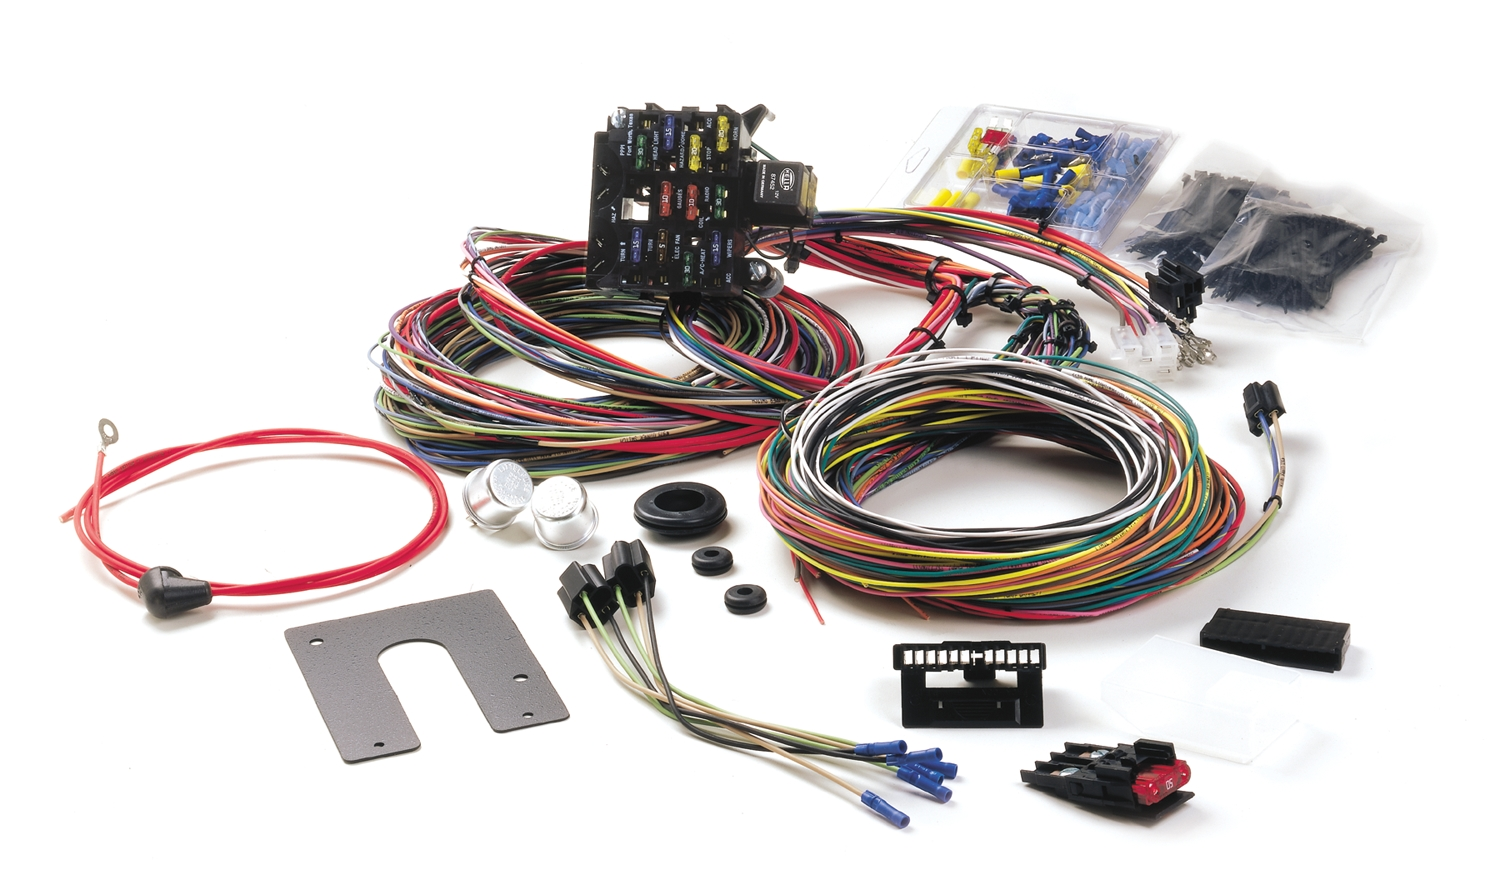 Painless Performance Wiring Diagram Water Pump Diy Enthusiasts Ignition 1978 Camaro Electrical House Harness Installation In 39 Ford Hotrod Hotline Rh Hotrodhotline Com Trans Am Starter Fuse